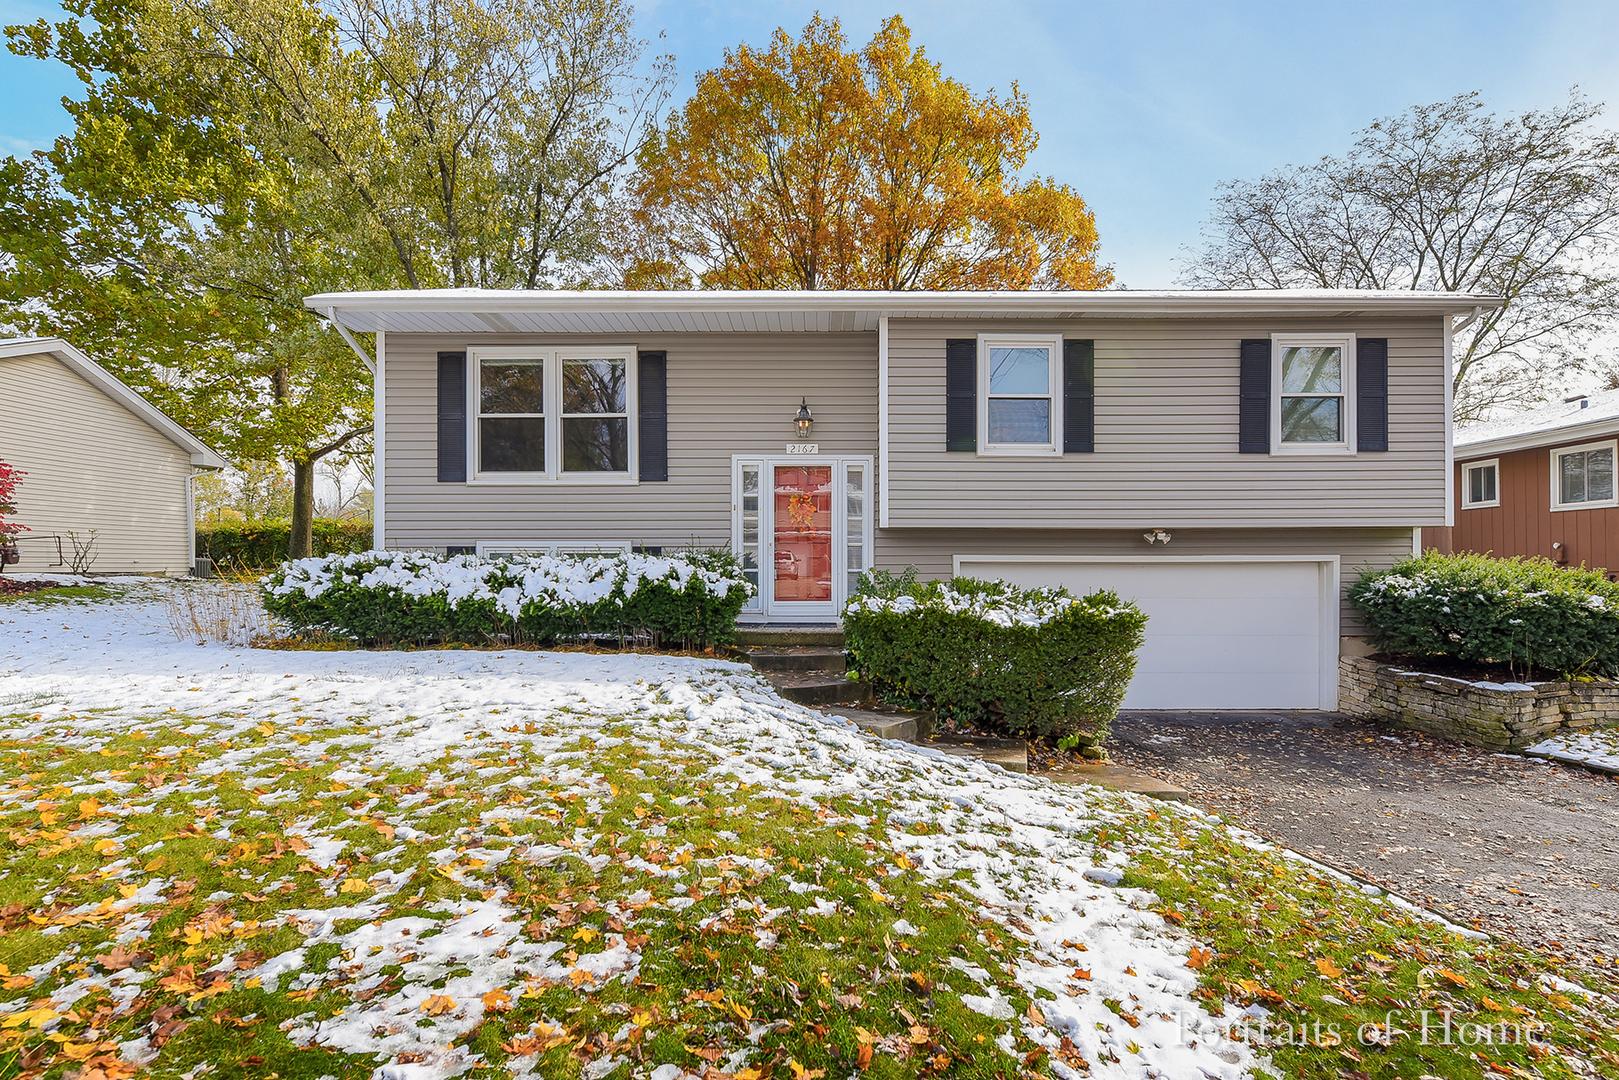 2167 Midhurst Road 60516 - One of Downers Grove Homes for Sale